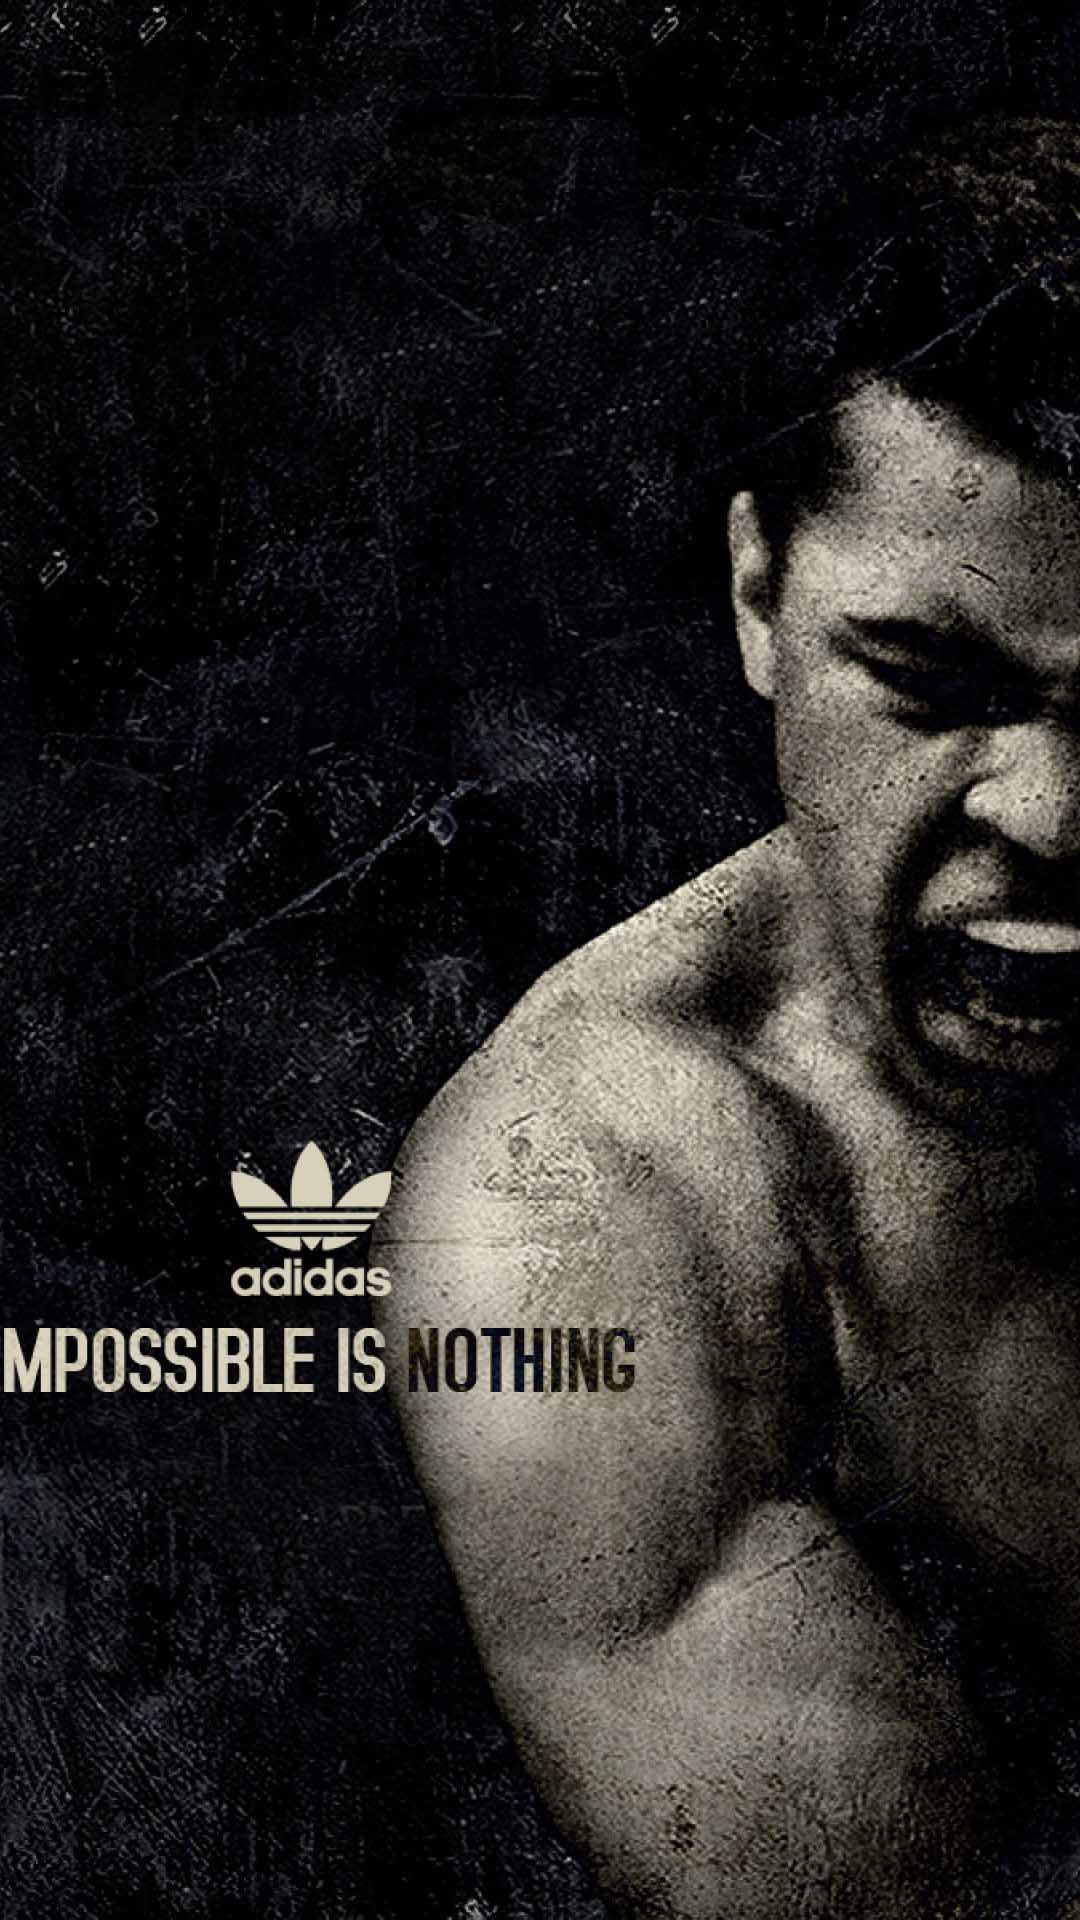 iPhone wallpaper muhammad ali adidas Muhammad Ali